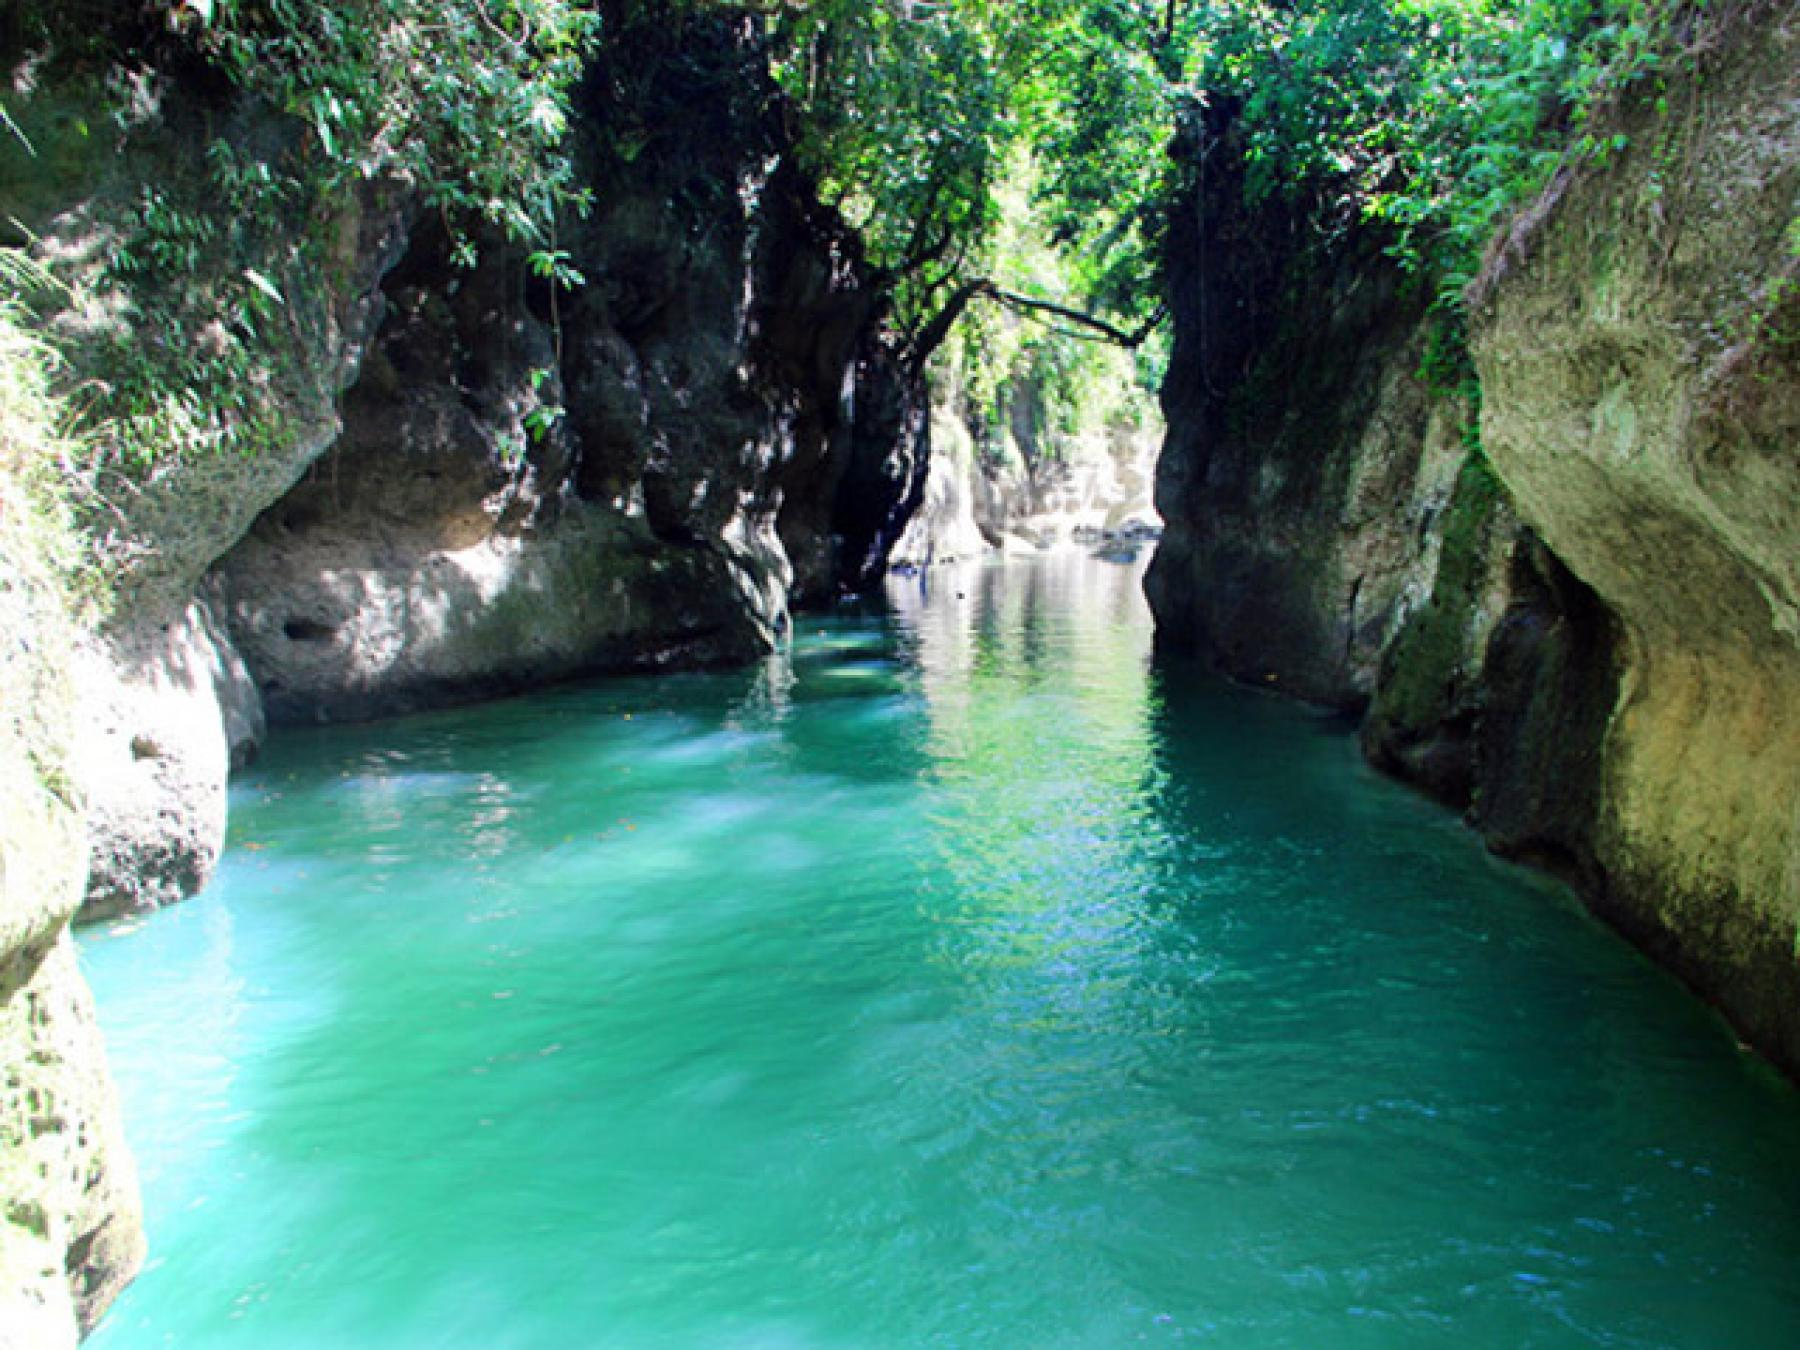 5D4N PHILIPPINES Whalesharks, ATV to Volcano, Underground Rivers, Waterfalls! starting at Philippines